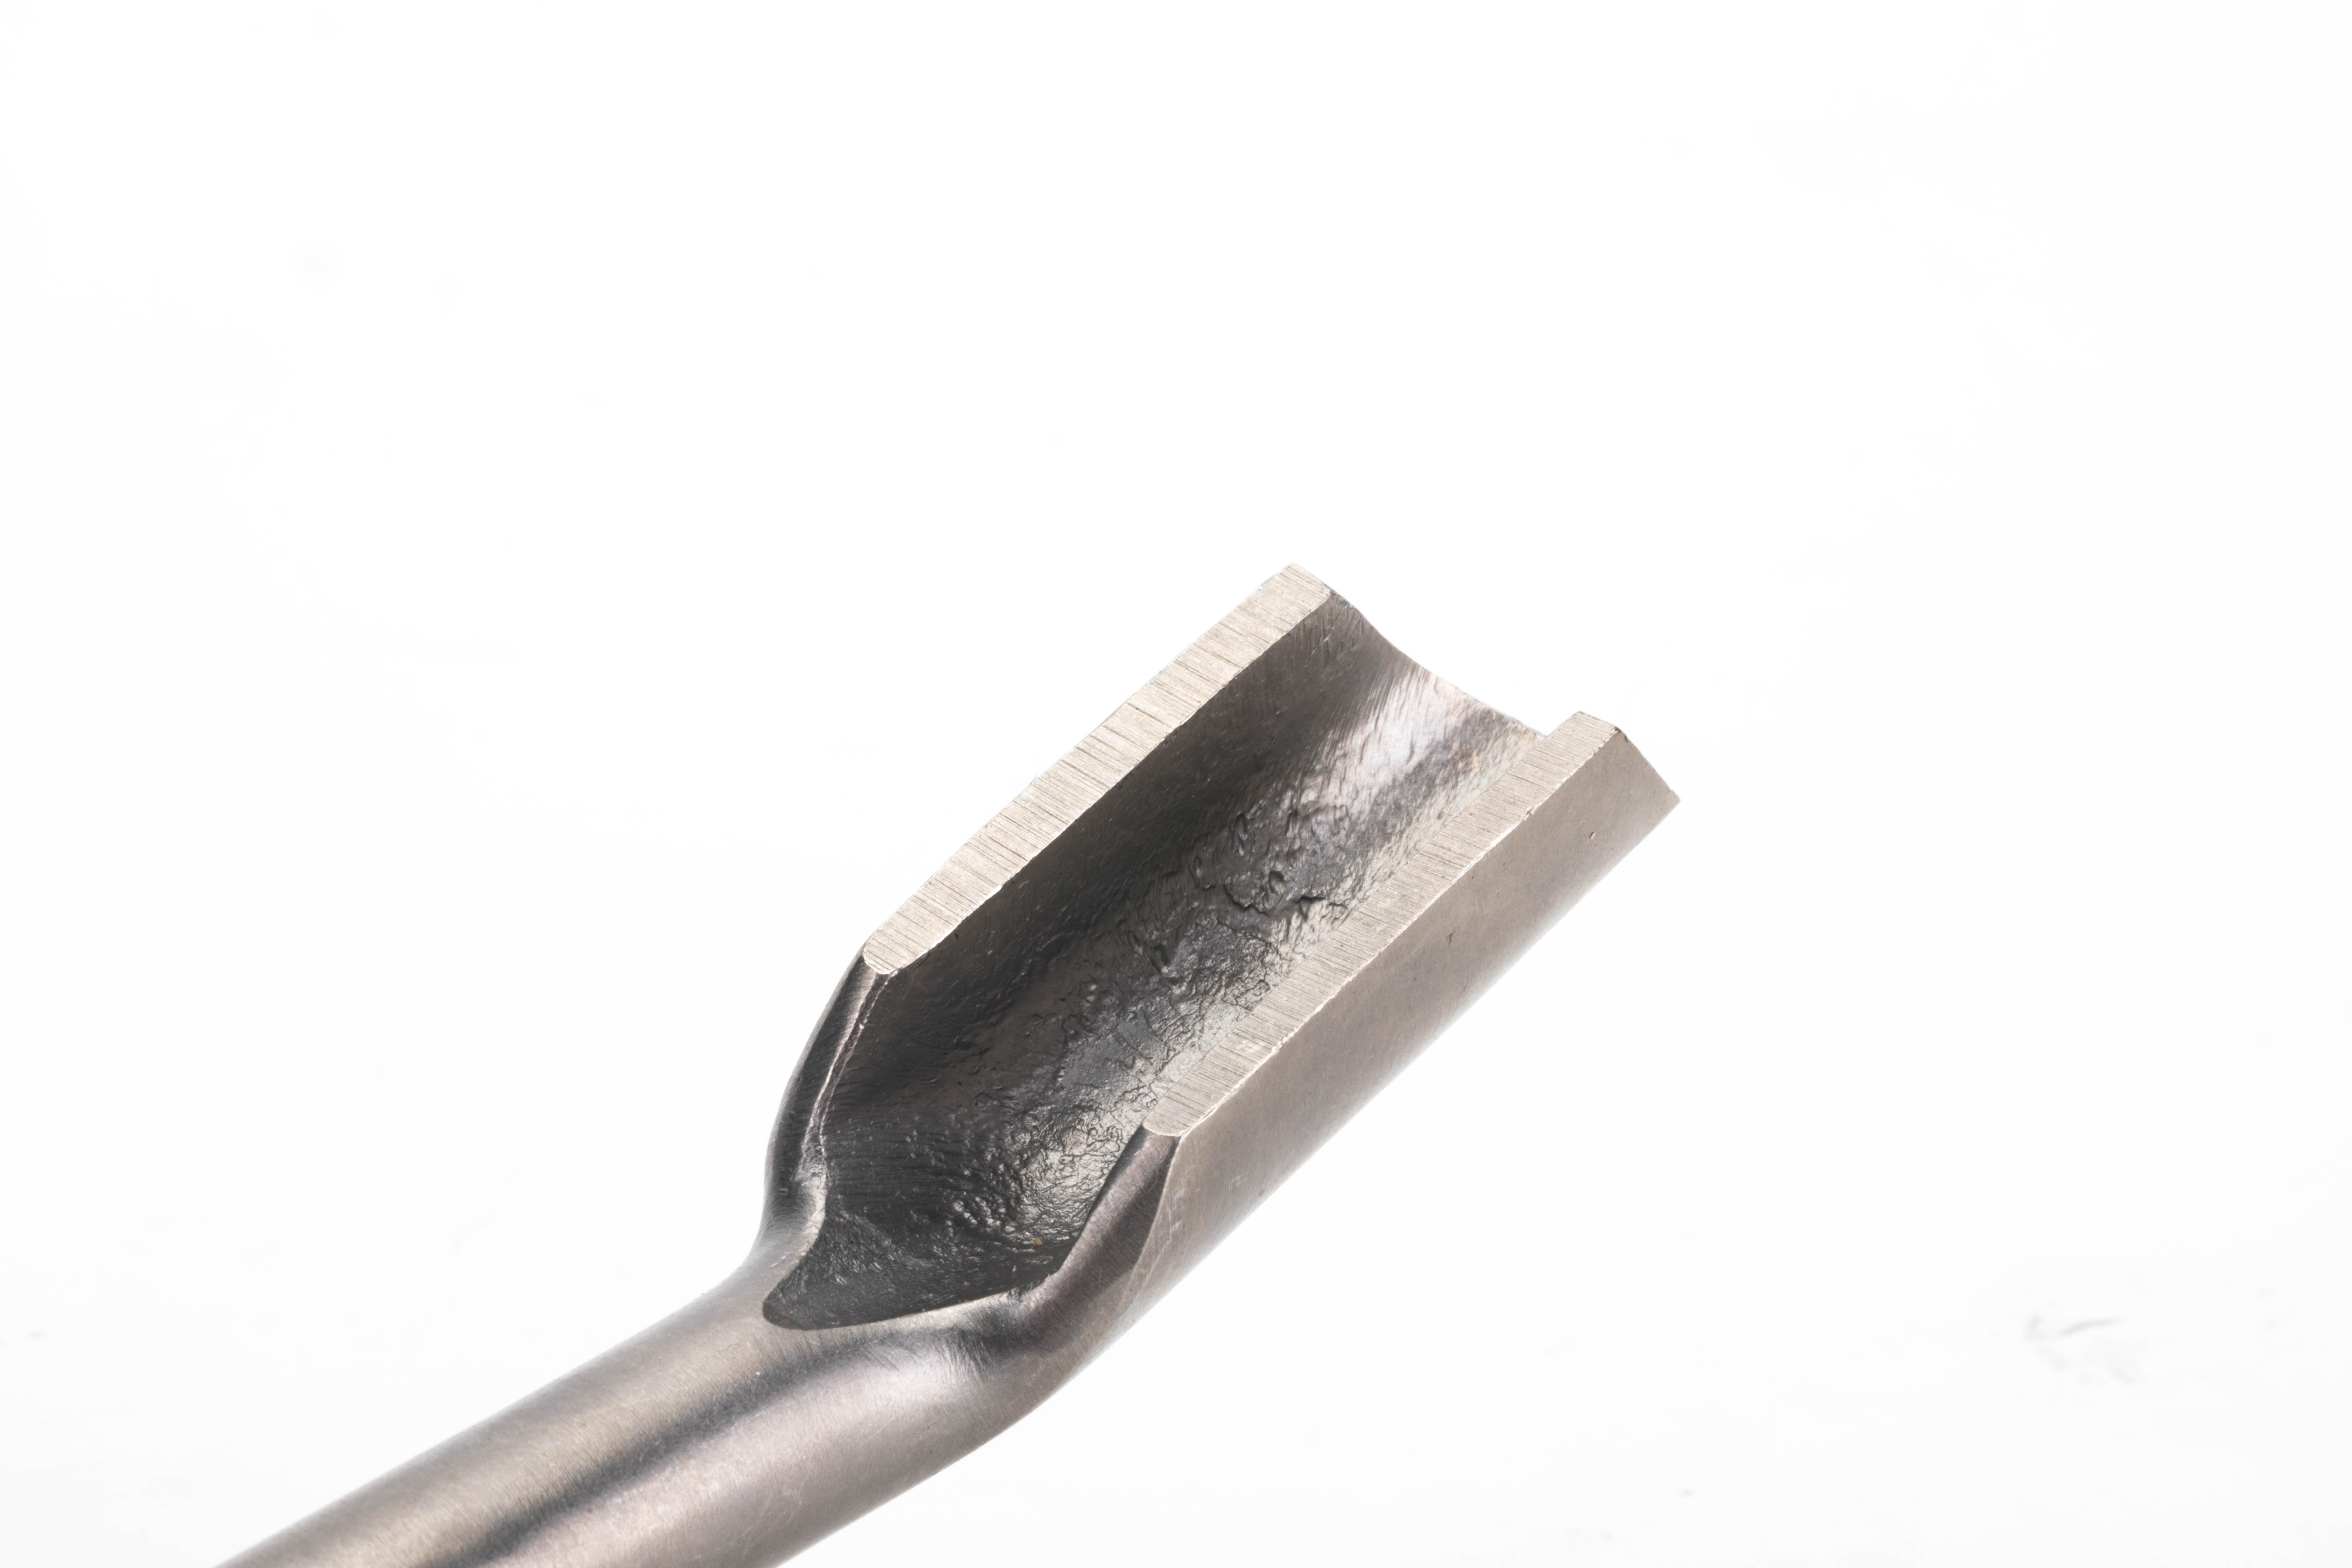 Hammer Chisel SDS-MAX Top GOUGE MPP Level